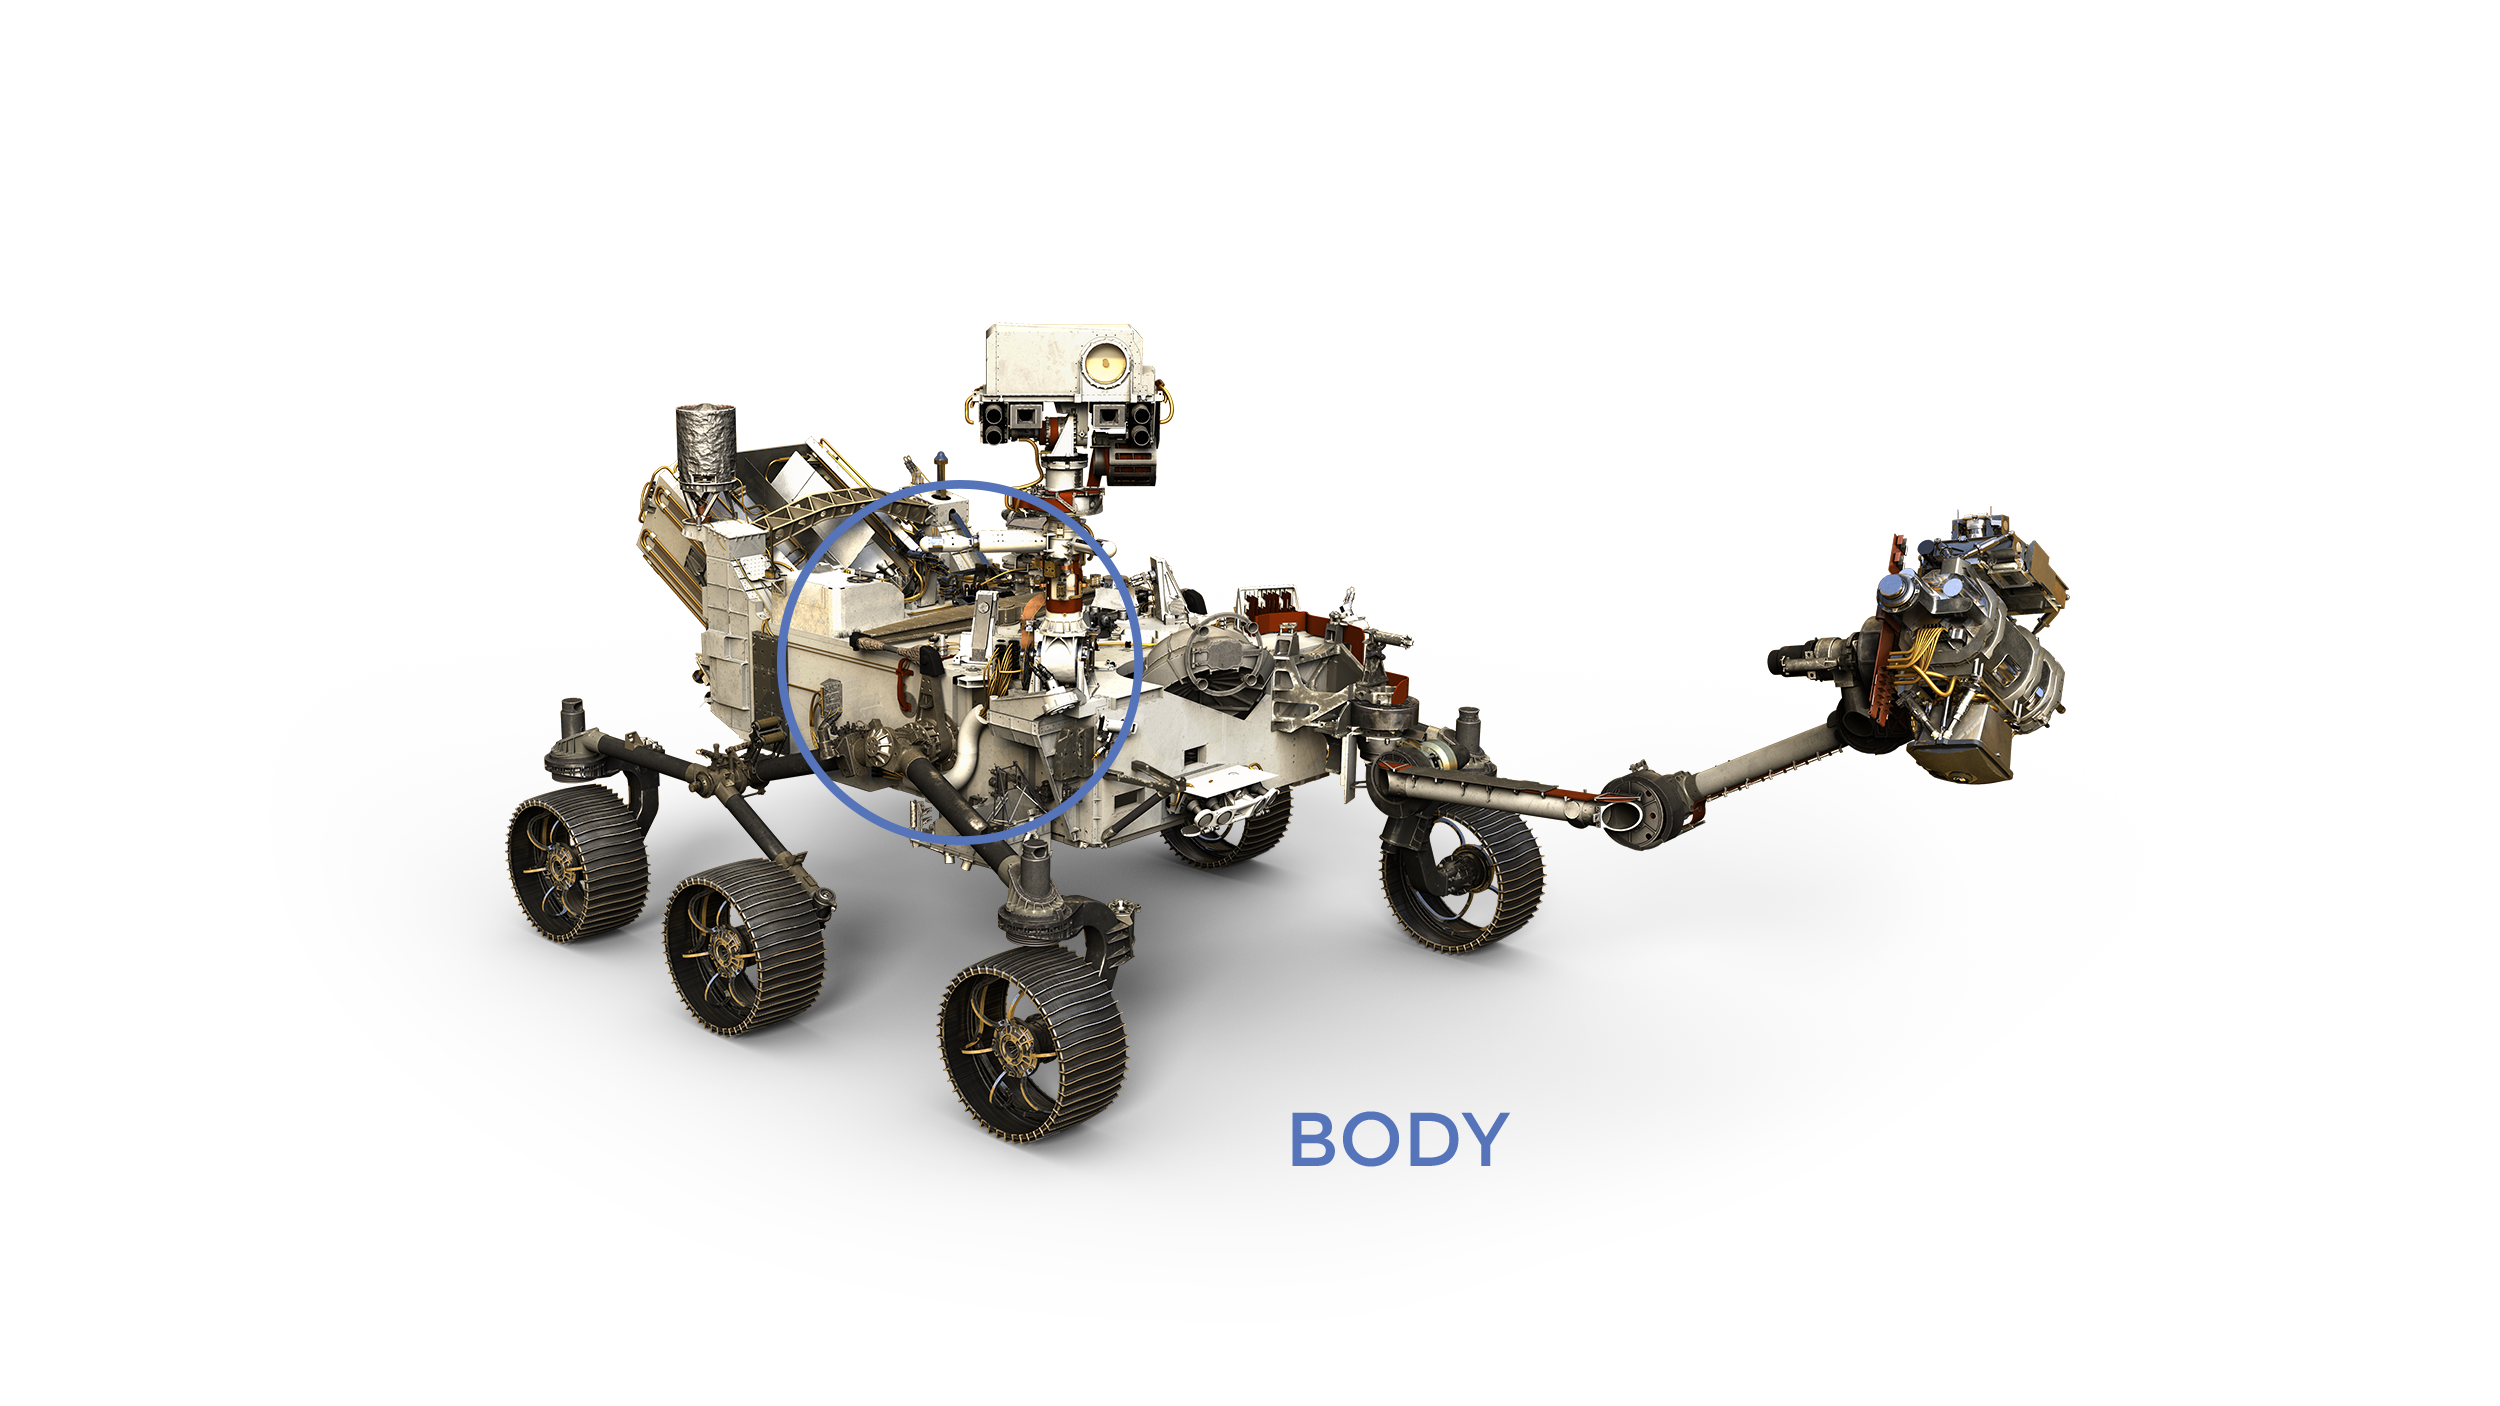 mars 2020 rover mission goals - photo #2